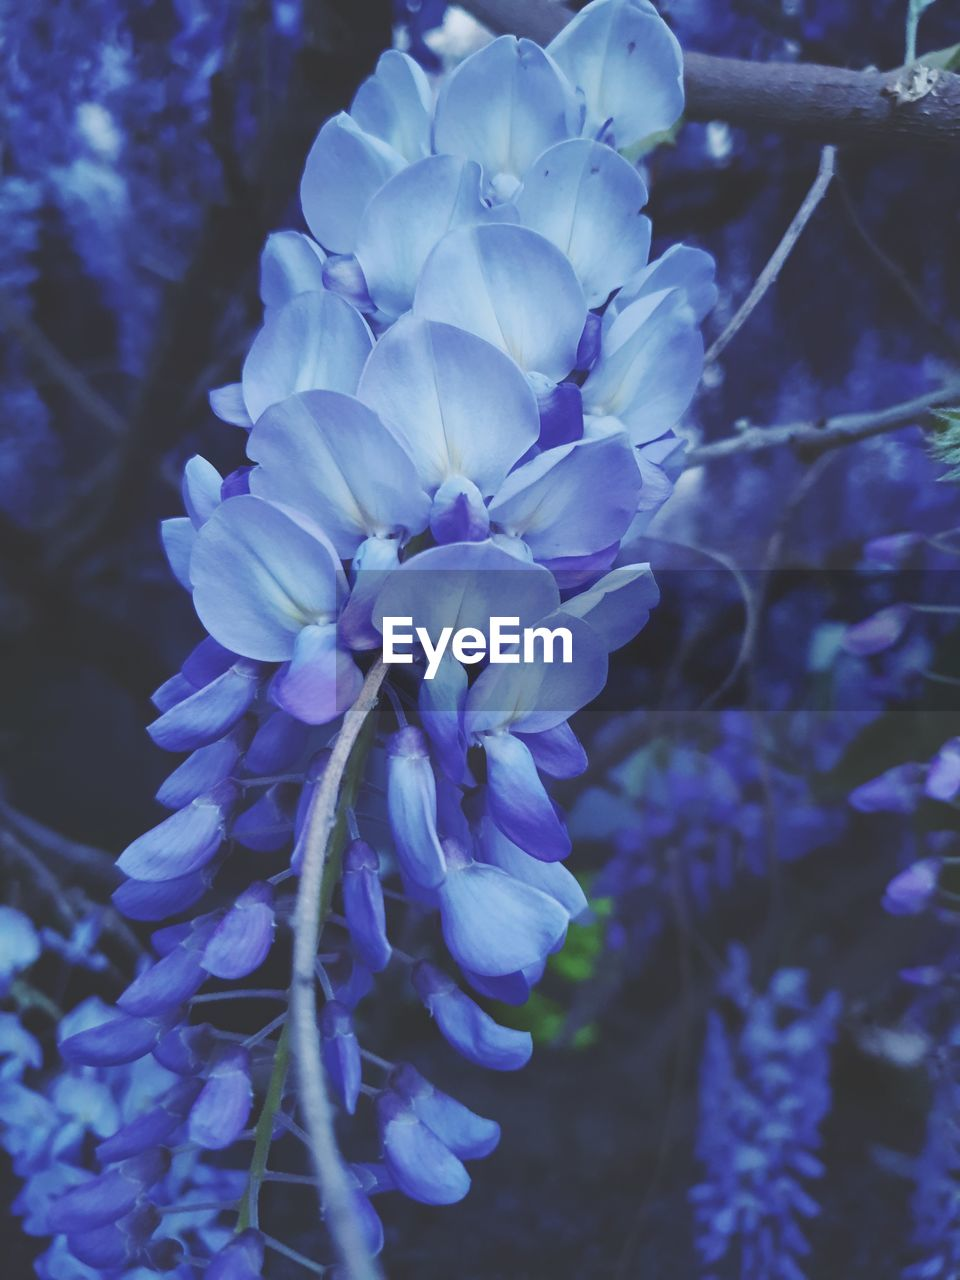 flowering plant, plant, flower, beauty in nature, fragility, vulnerability, freshness, petal, close-up, growth, purple, nature, inflorescence, focus on foreground, flower head, no people, botany, selective focus, outdoors, blossom, spring